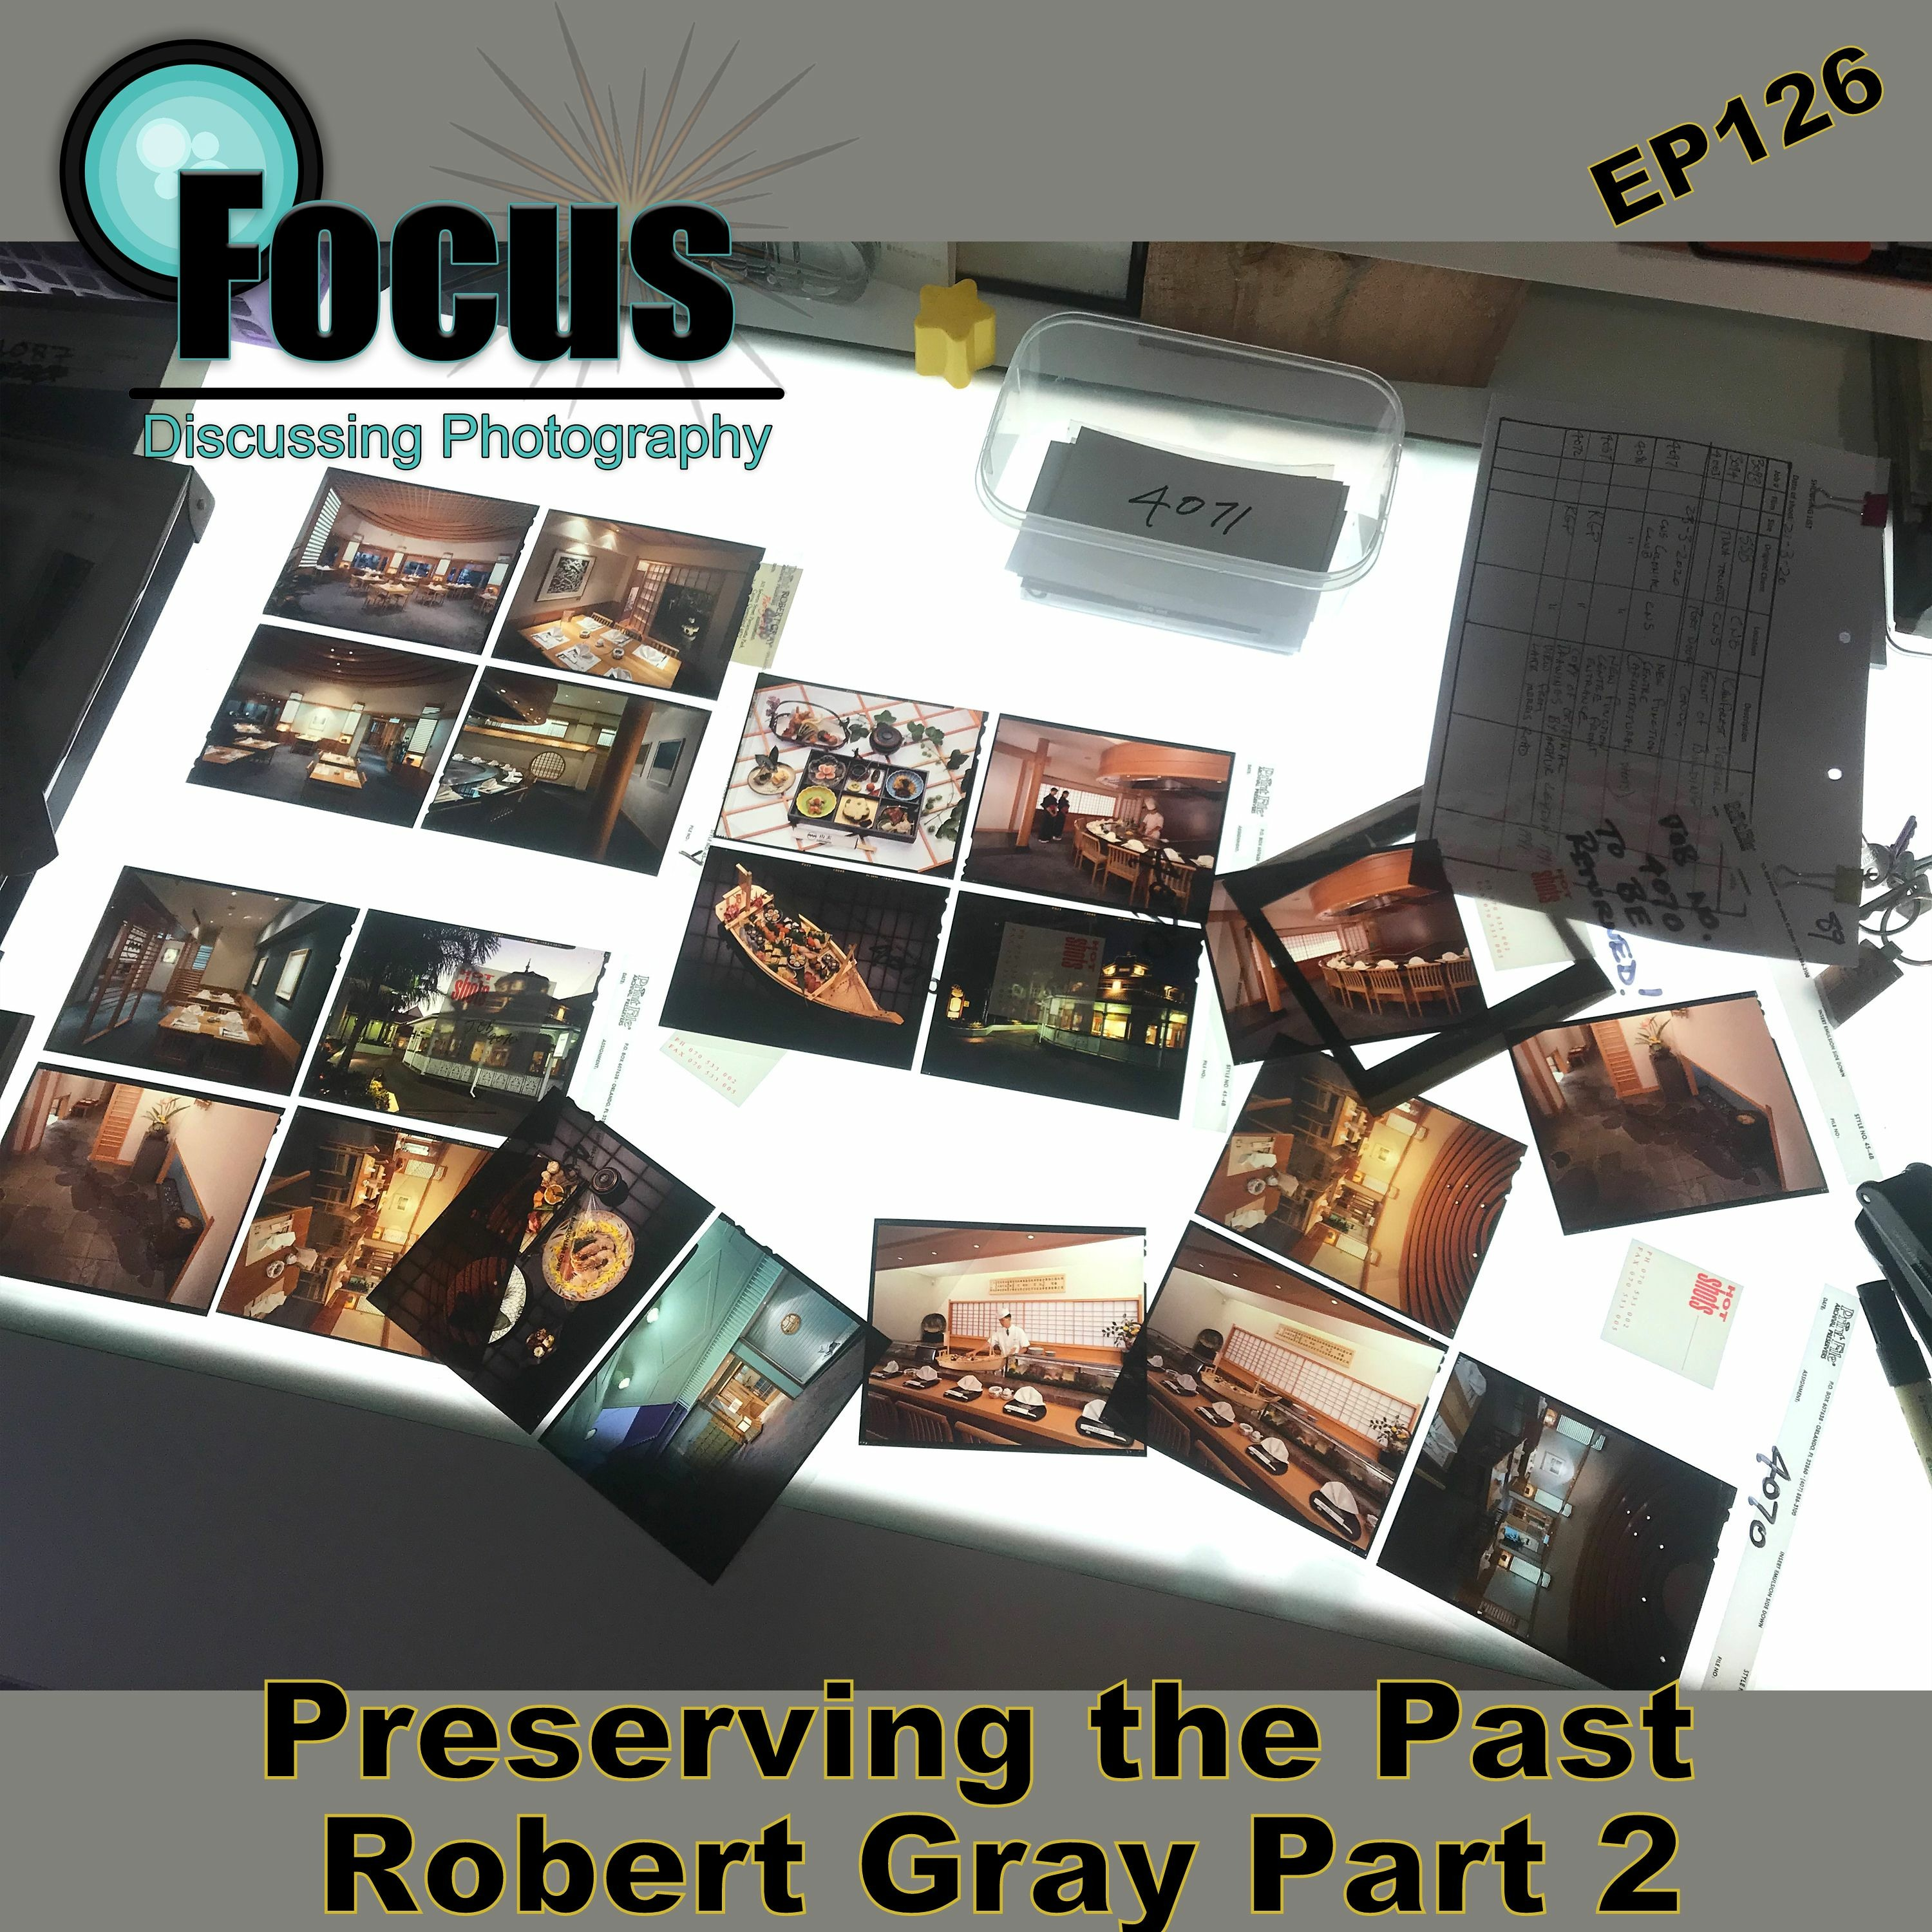 Focus: Photography Podcast Preserving the Past with Stephen Finkel and Robert Gray Part 2 EP126